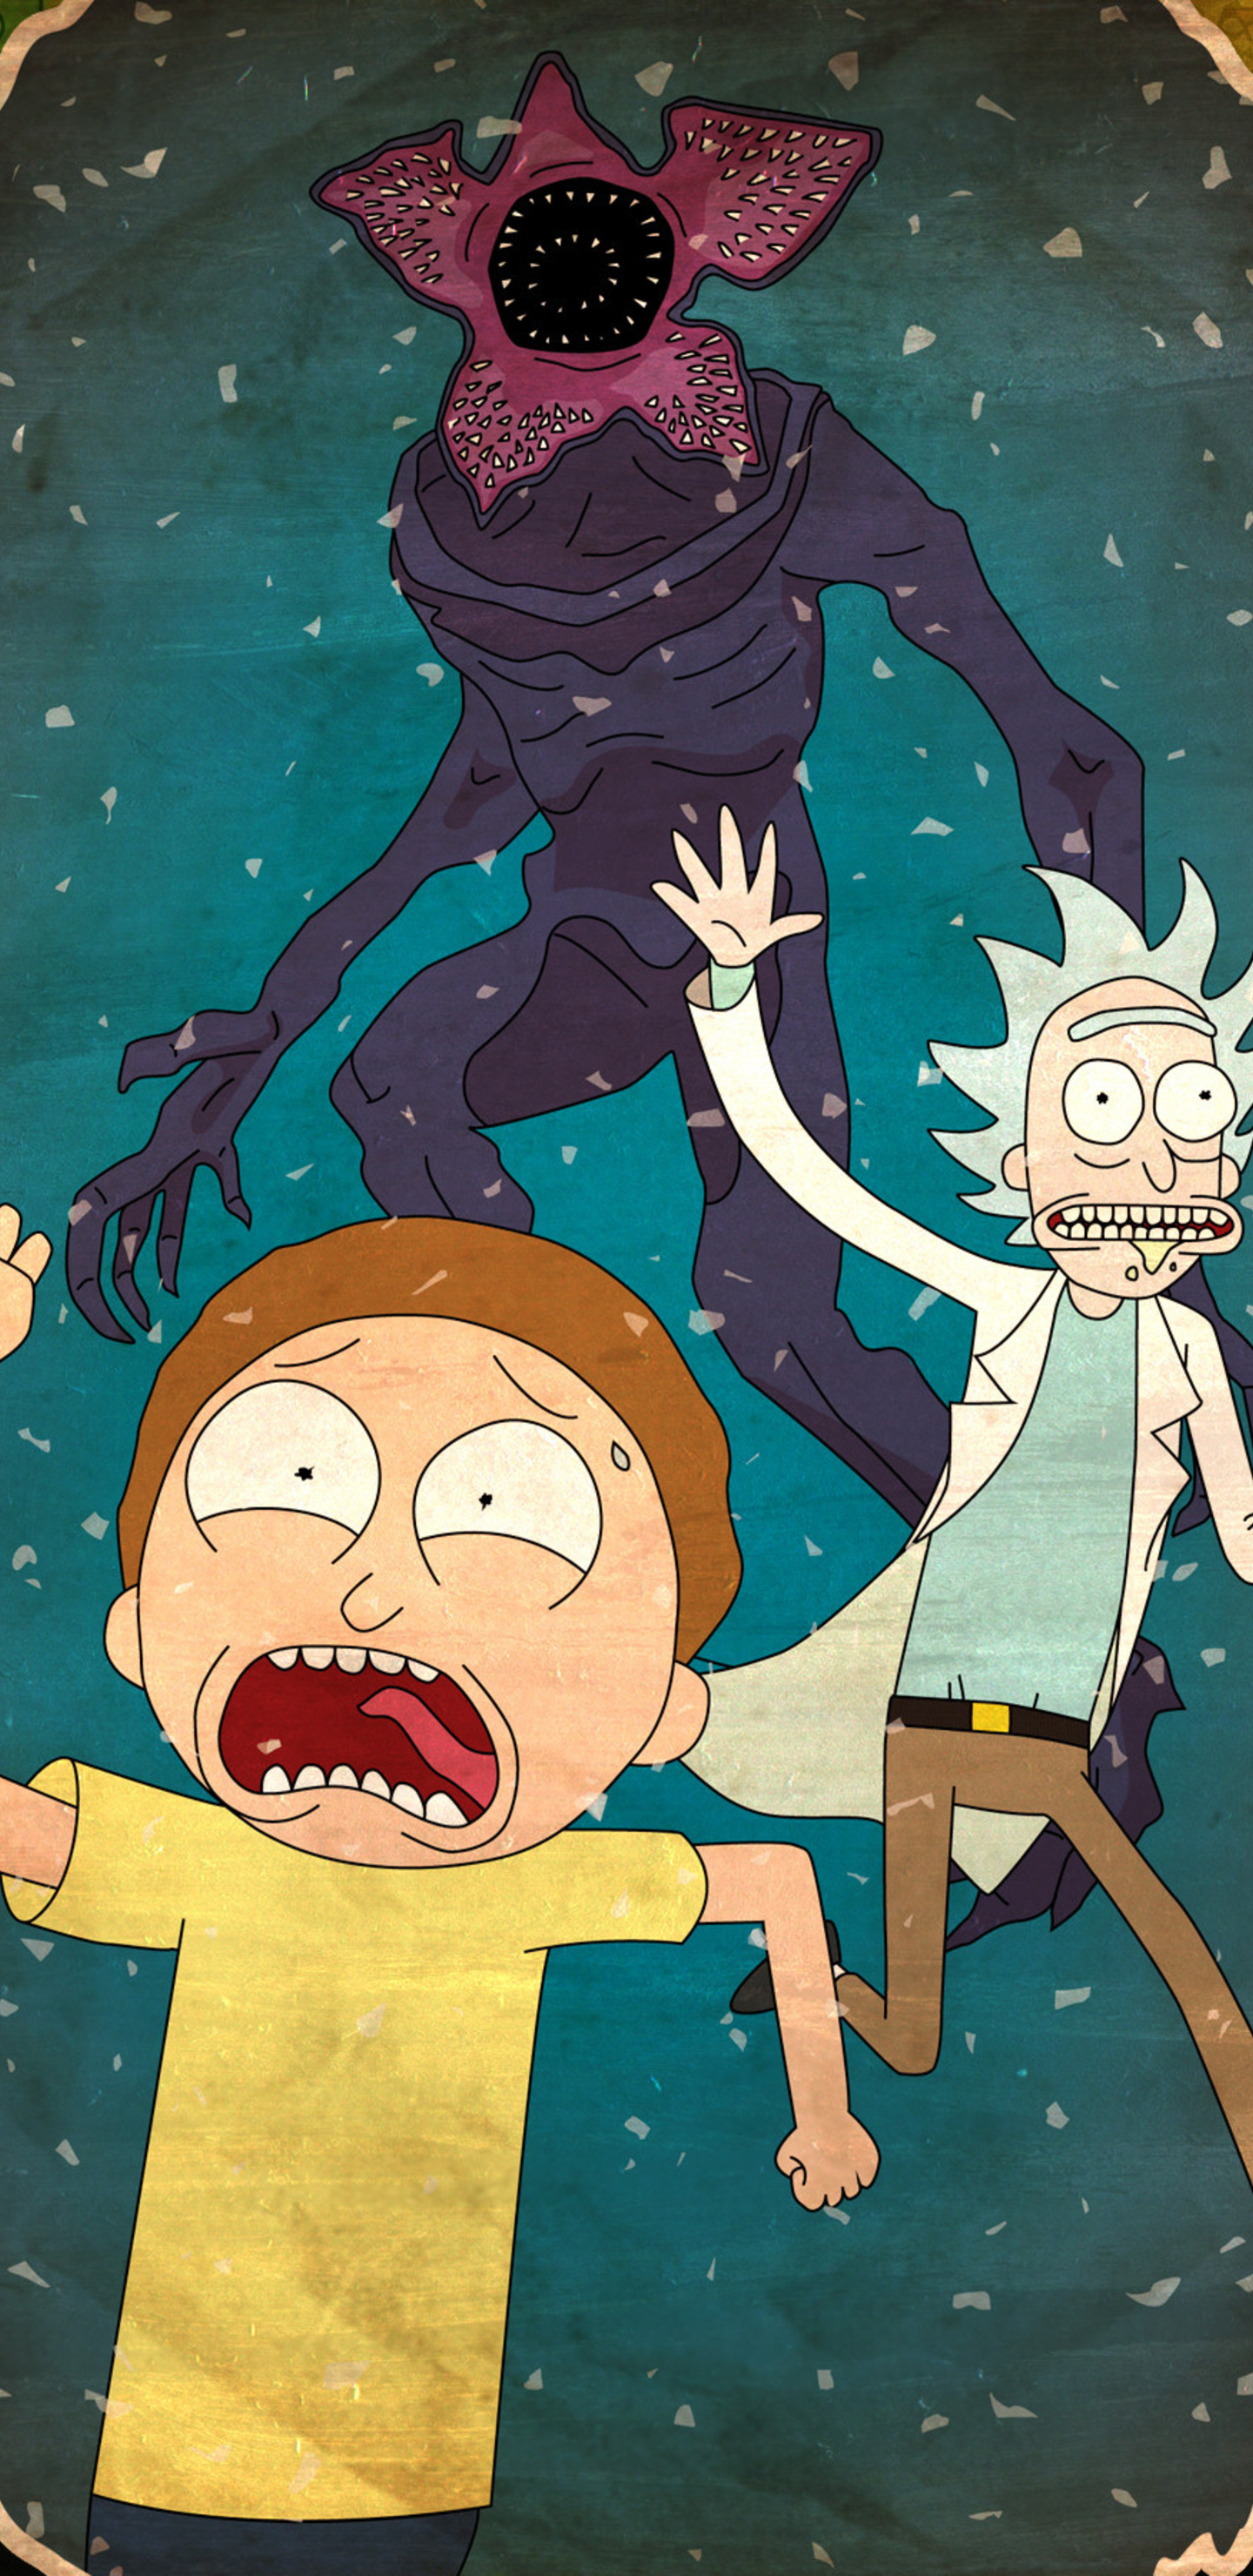 1440x2960 Rick And Morty 4k Samsung Galaxy Note 98 S9s8s8 Qhd